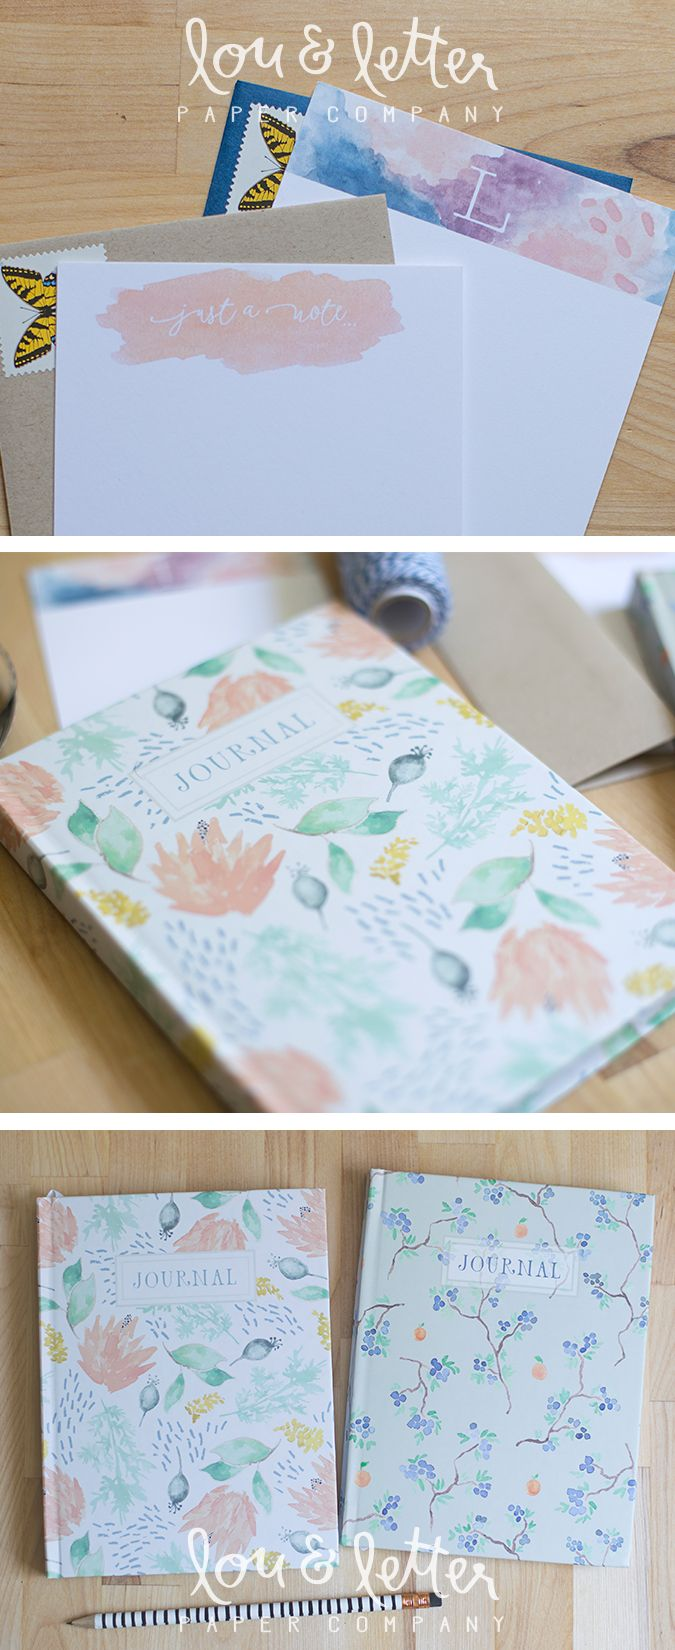 journals and stationery in floral and watercolor designs // Lou & Letter Paper Co.